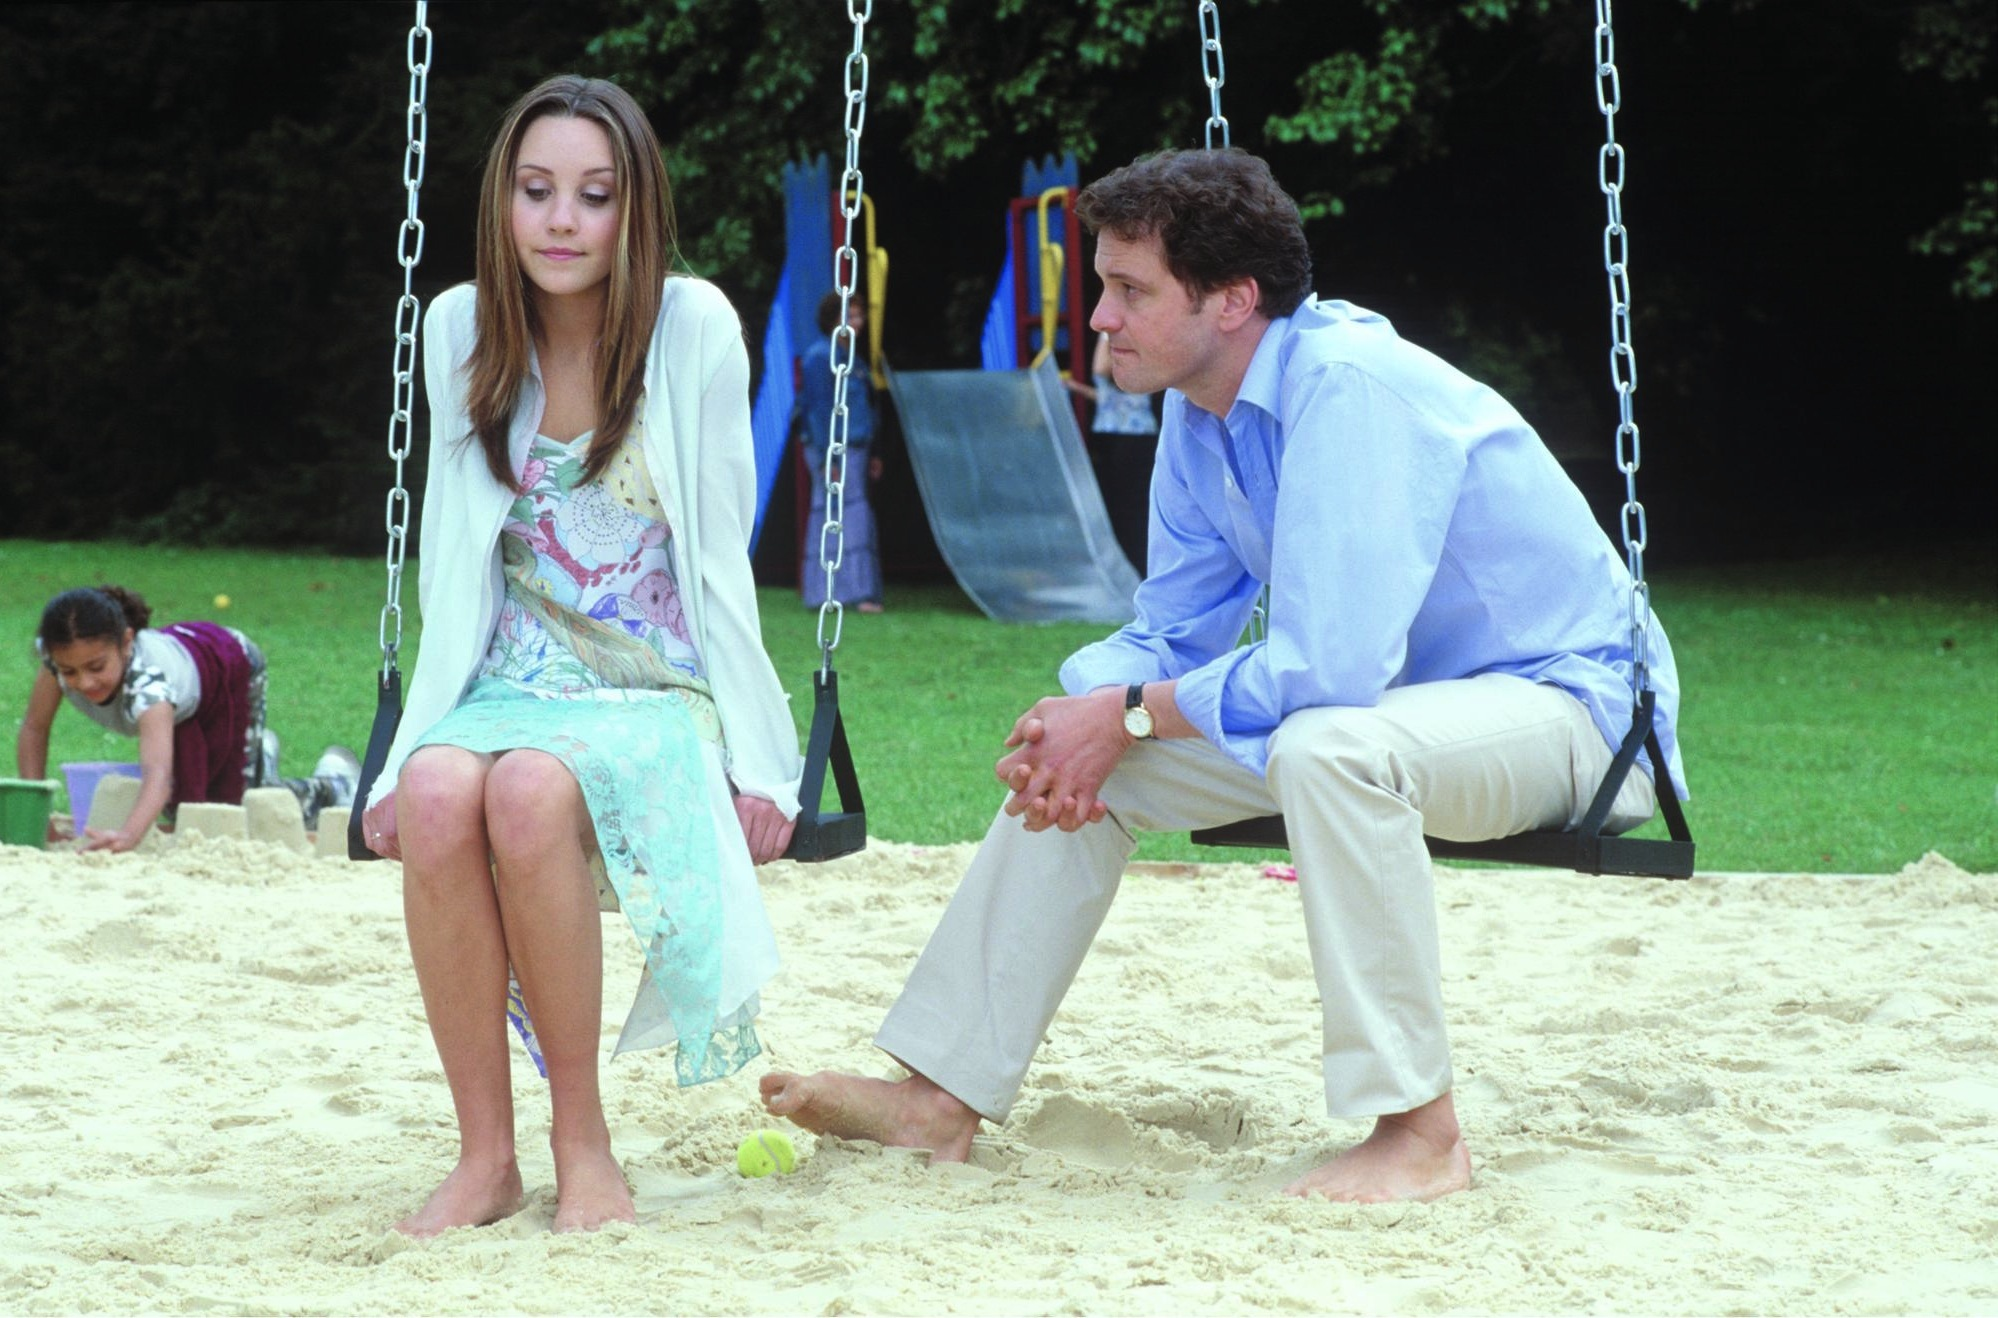 Colin Firth and Amanda Bynes in What a Girl Wants (2003)